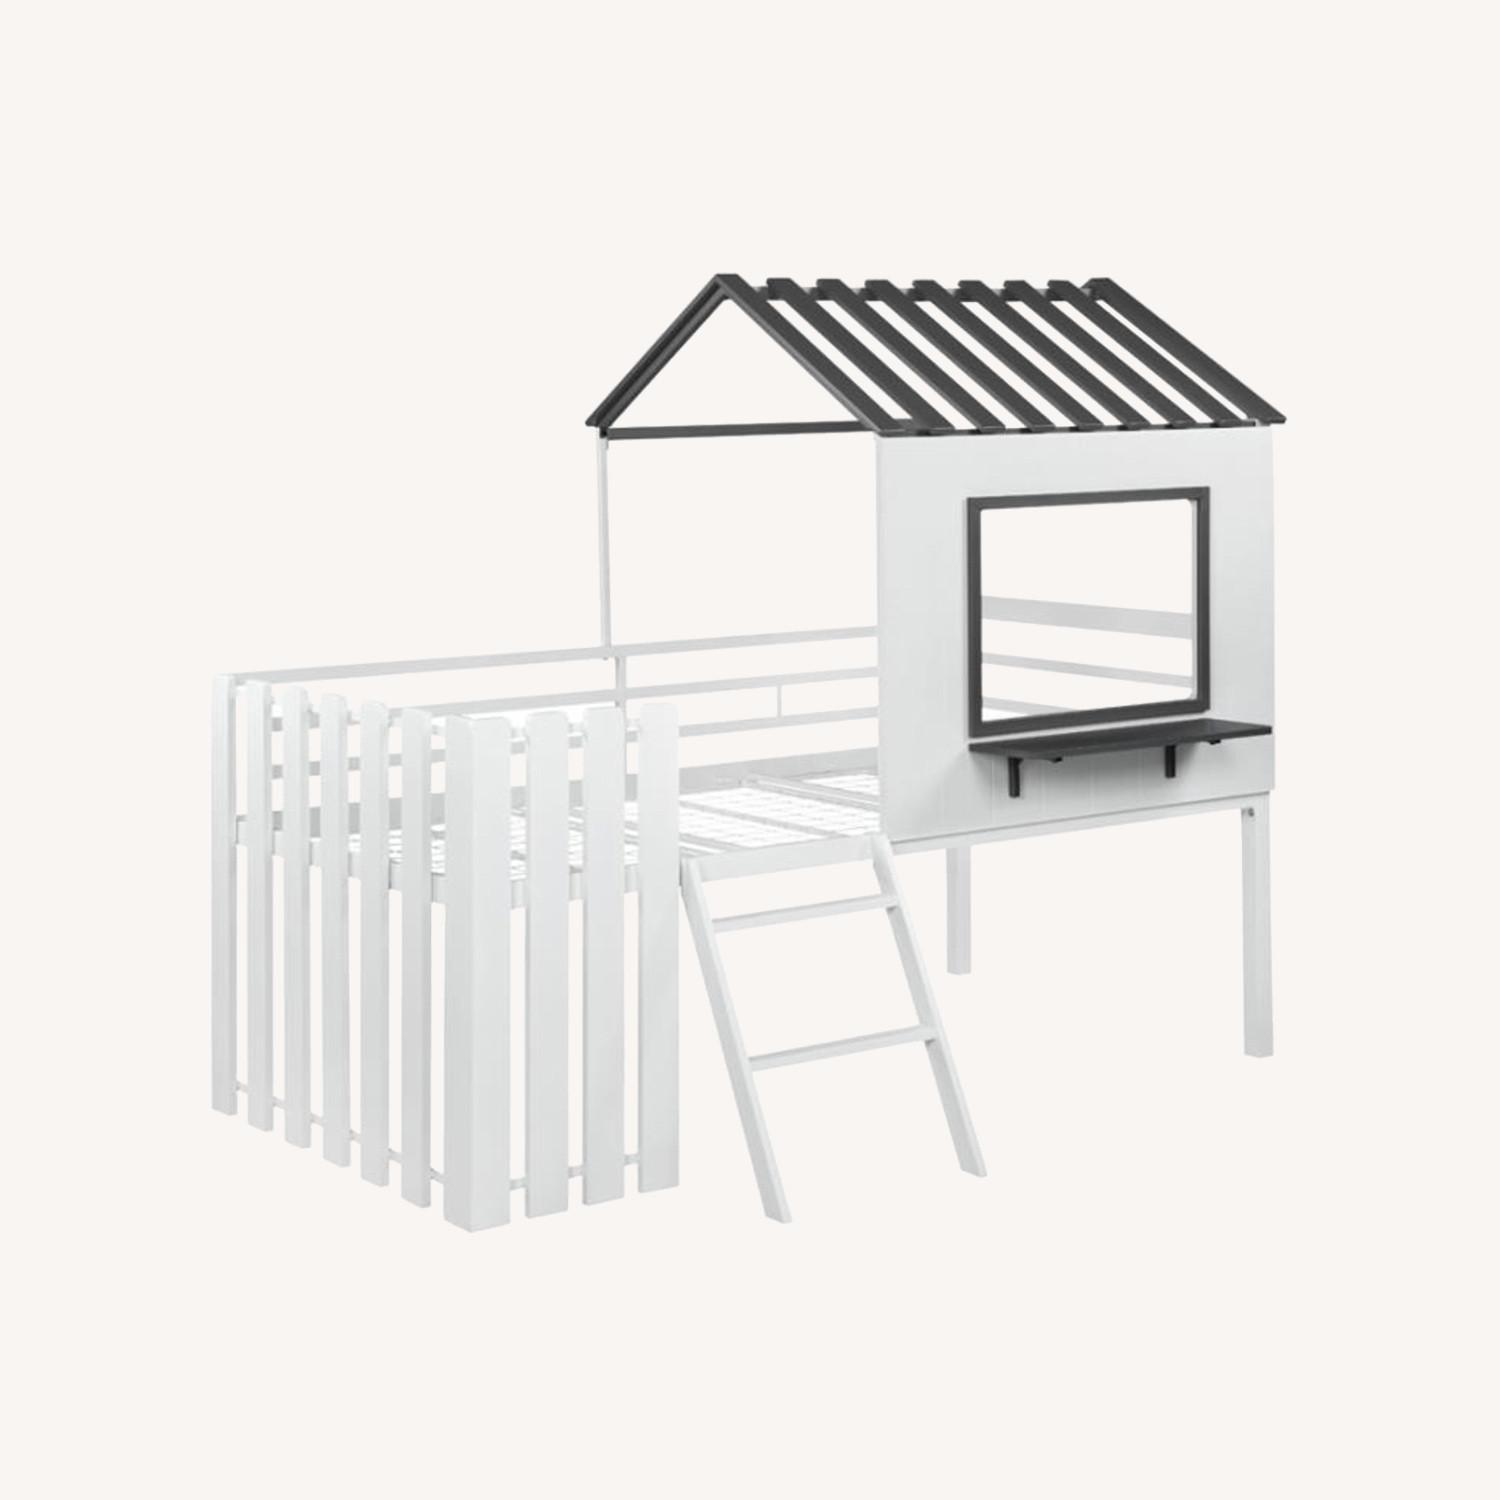 House-Themed Twin Loft Bed In Two-Tone Finish - image-6